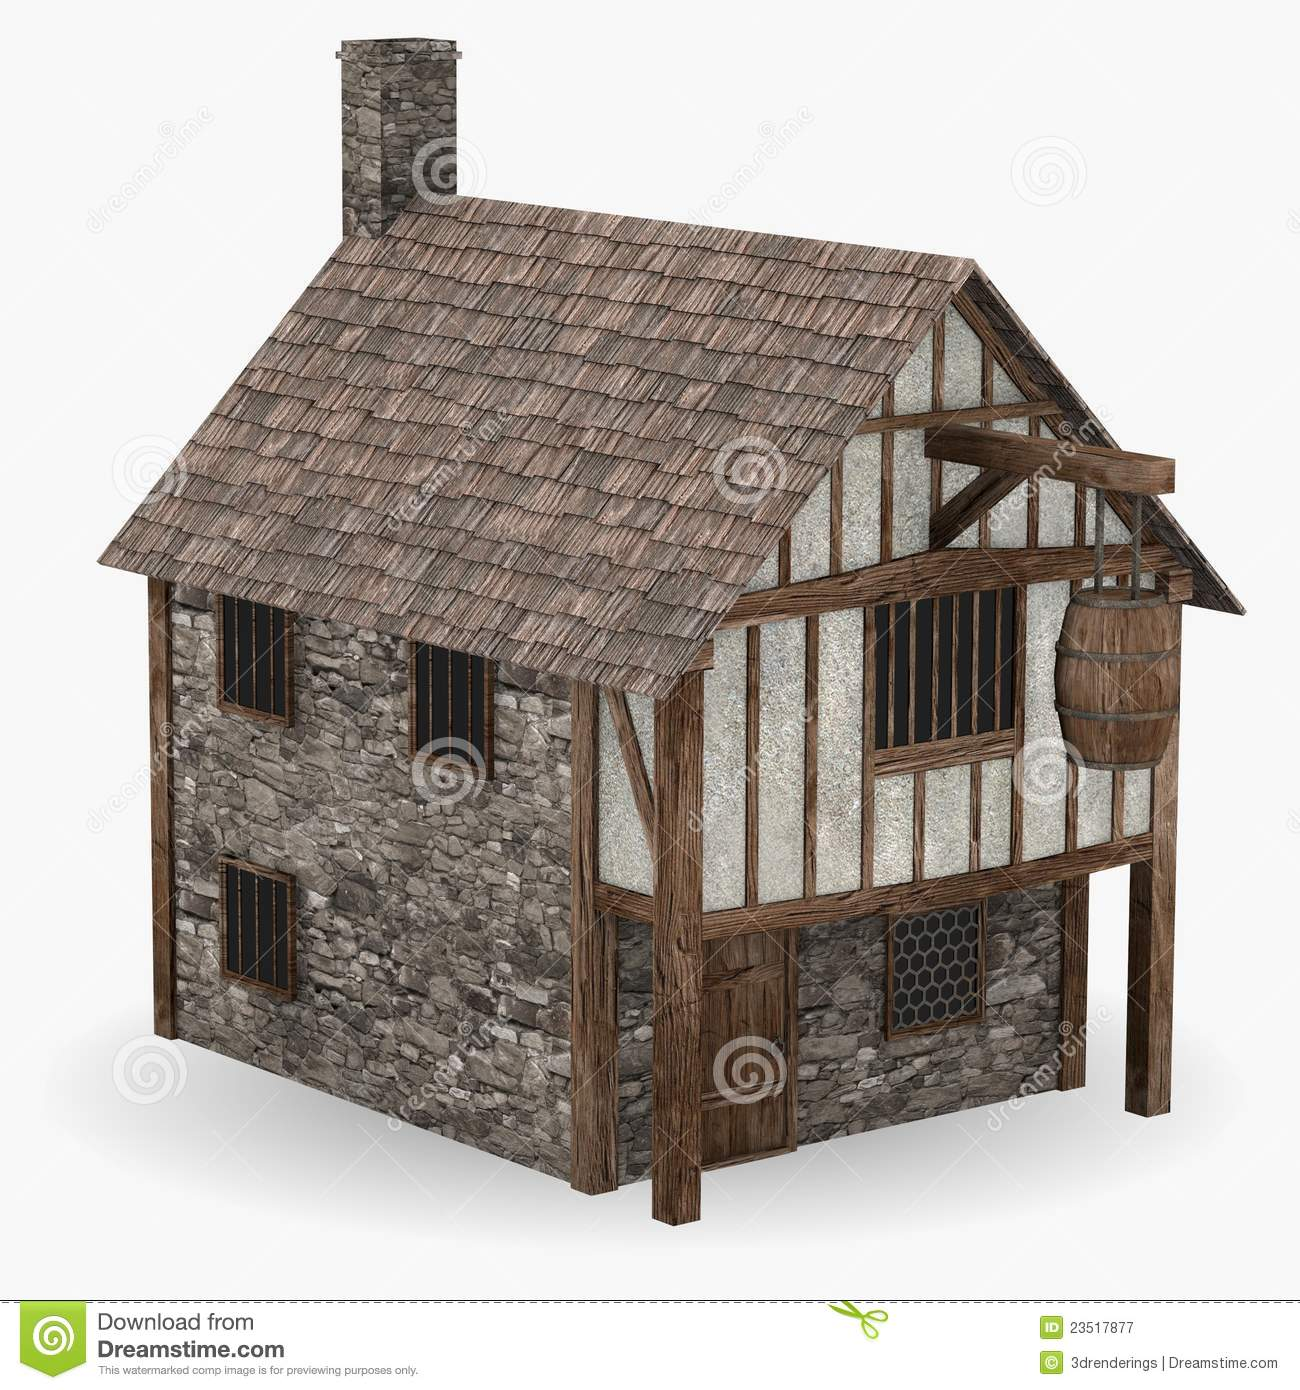 Royalty Free Stock Photography: Medieval tavern: www.dreamstime.com/royalty-free-stock-photography-medieval-tavern...